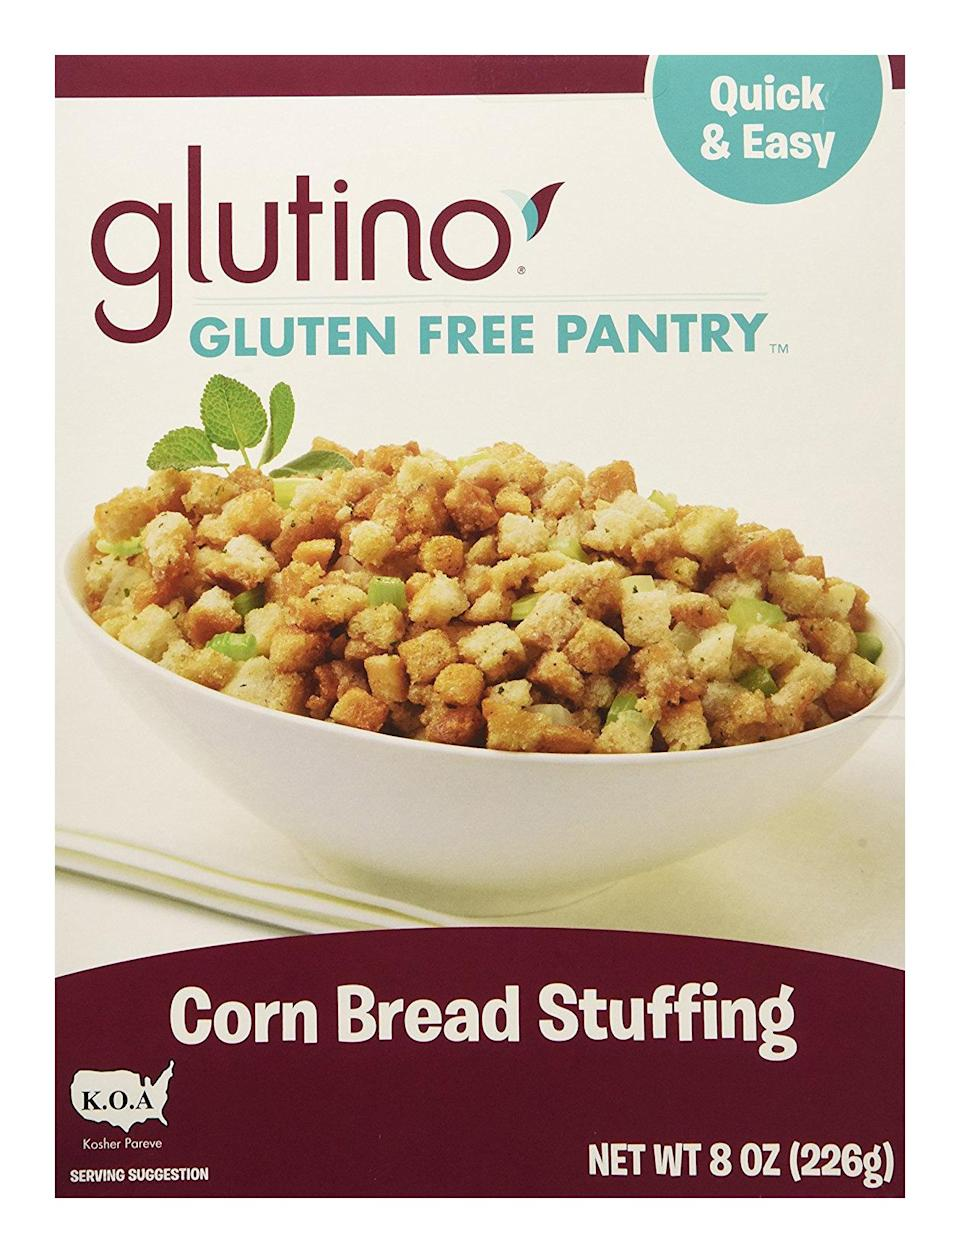 <p>From the gluten-free gods themselves comes Glutino's version of stuffing. With a cornbread base, the stuffing comes out ultra moist, making for a super warm and comforting side to accompany traditional wheat-based standards.</p>